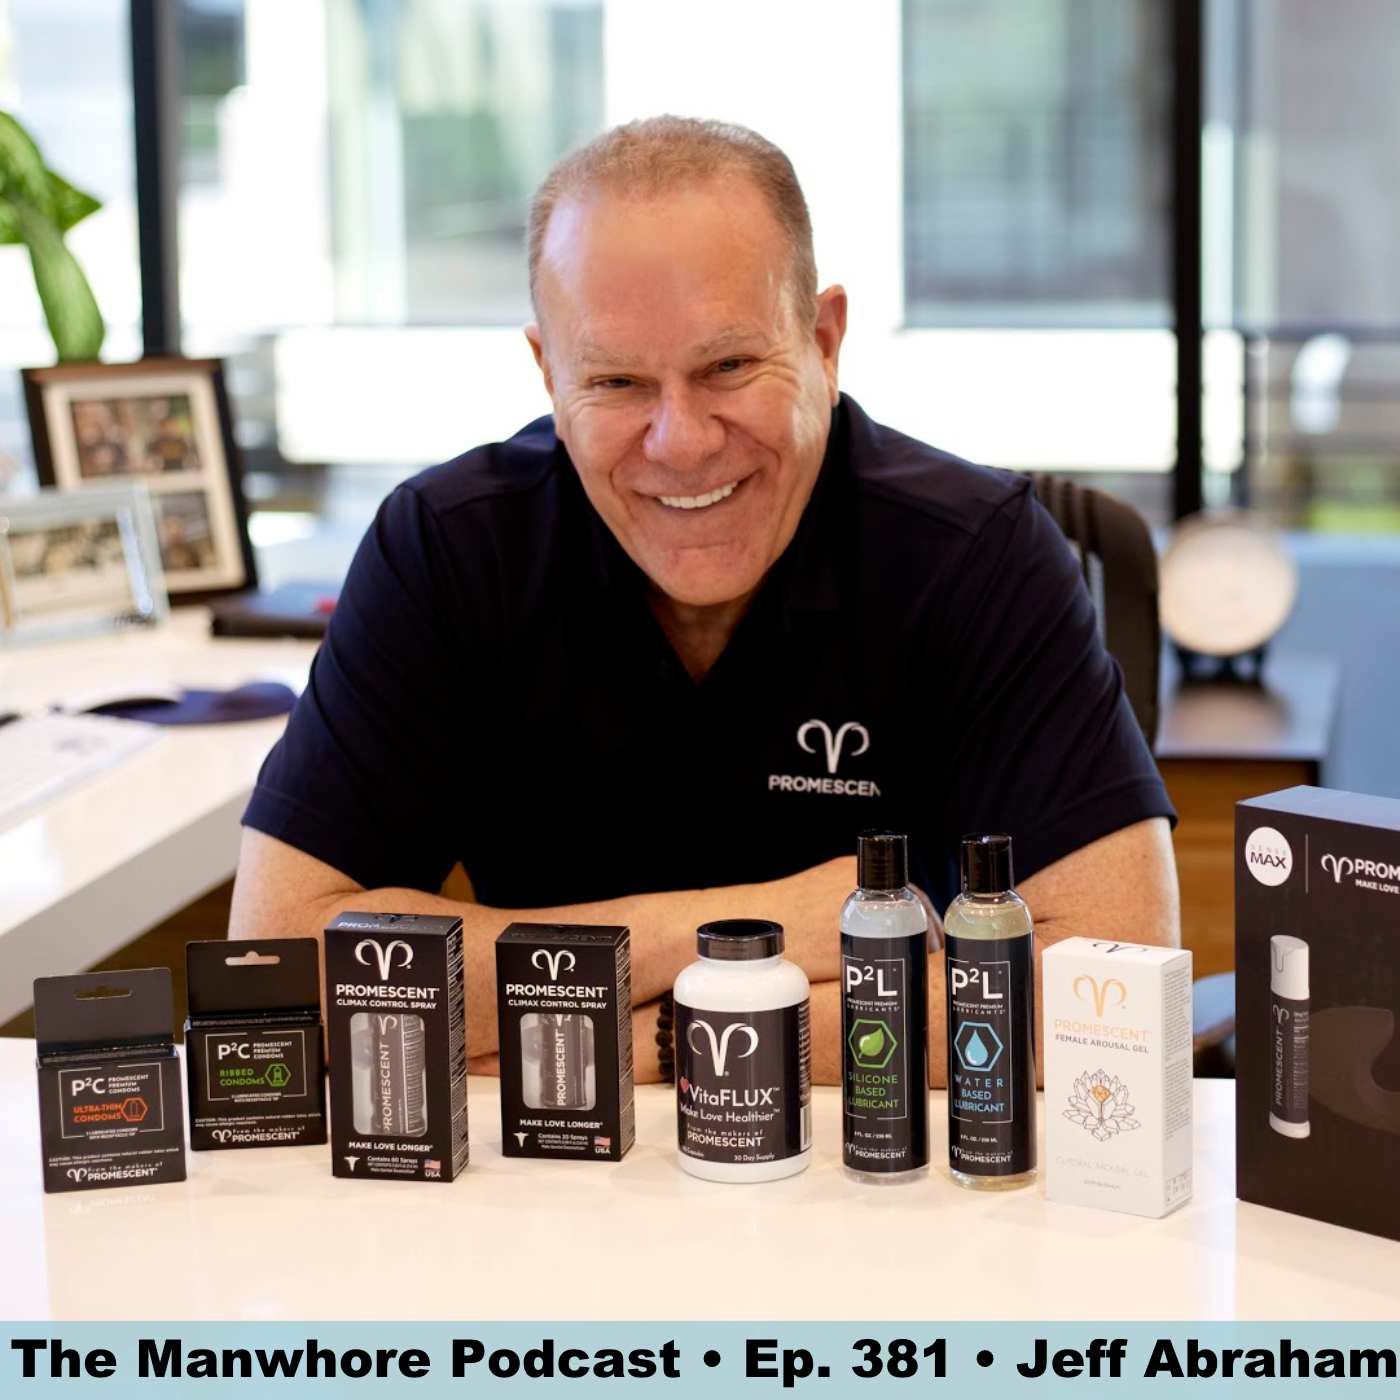 The Manwhore Podcast: A Sex-Positive Quest - Ep. 381: Boomers, Dating, and Lasting Longer with Jeff Abraham